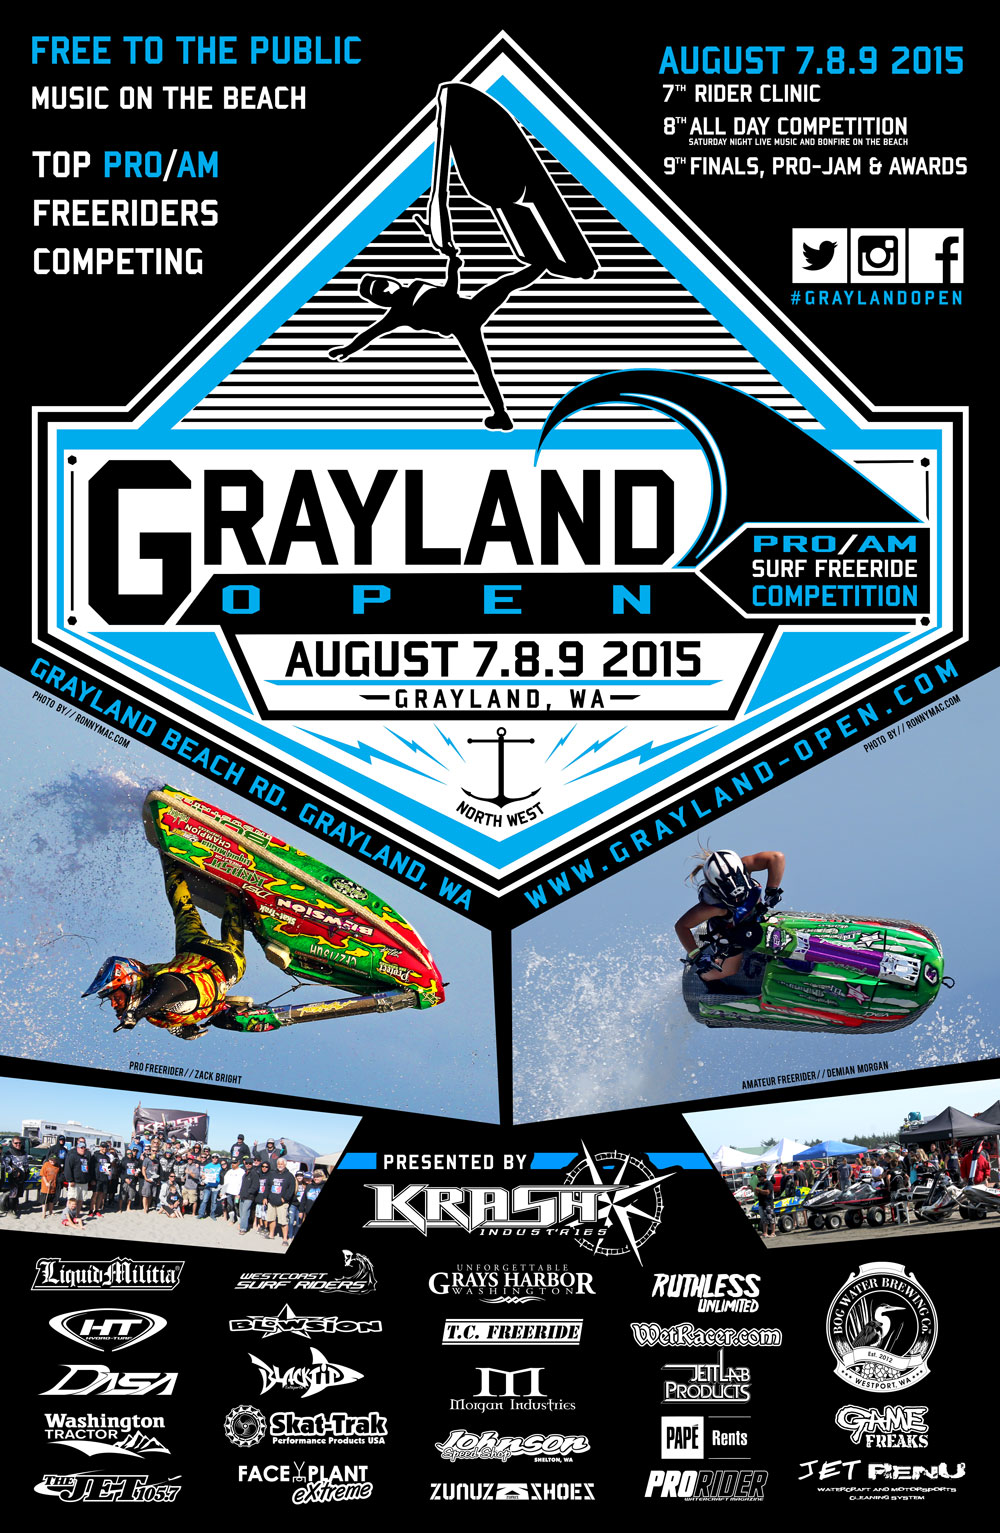 Grayland Poster Update 2